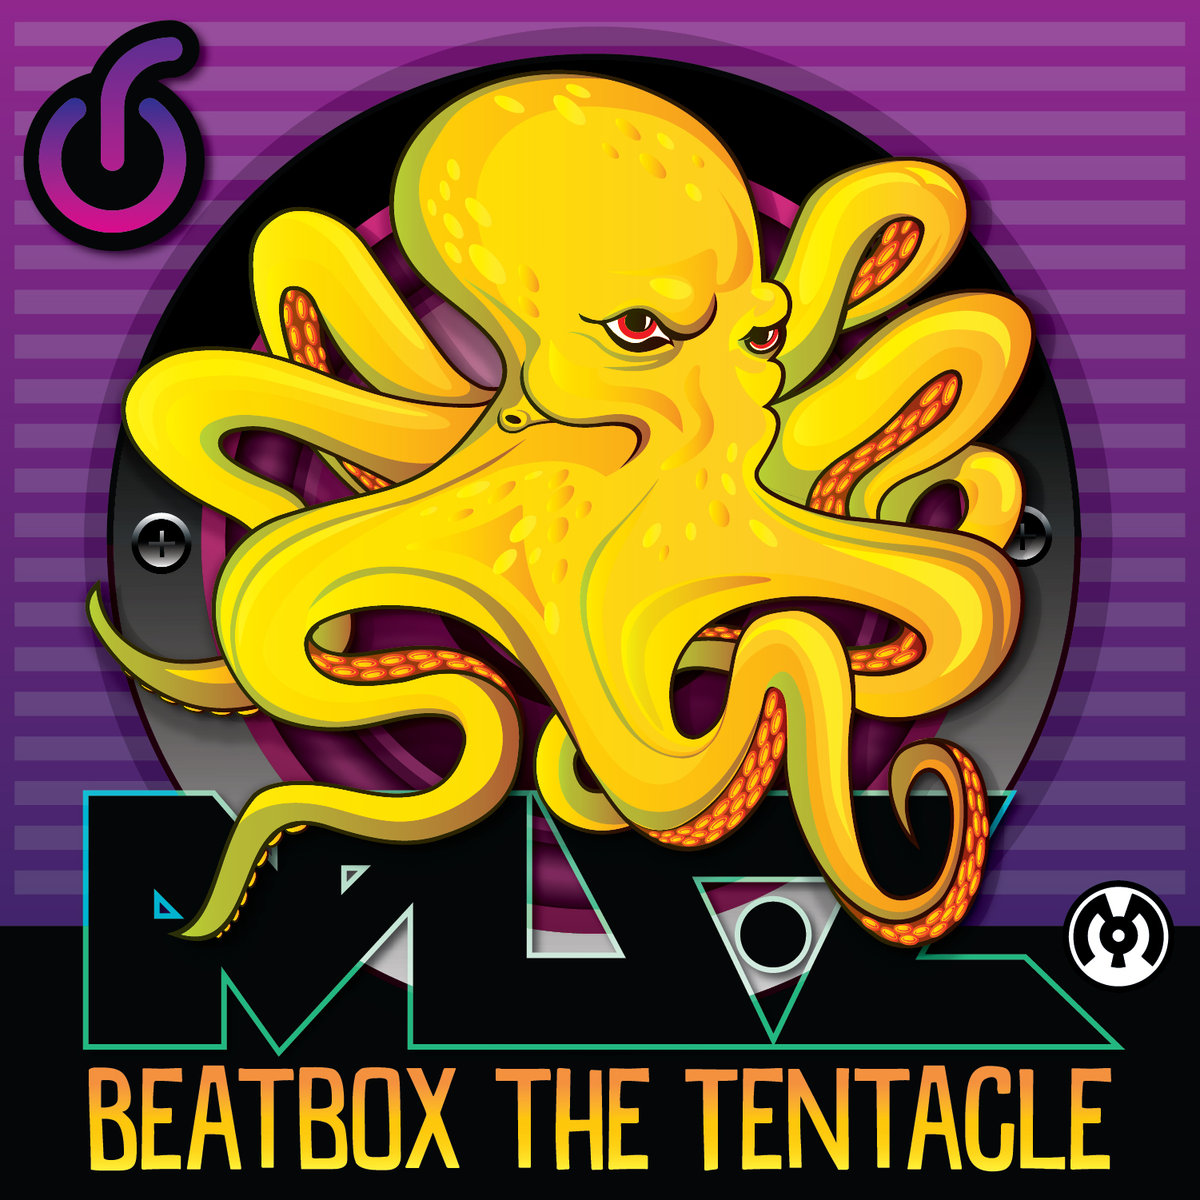 Aplsoz - Beatbox the Tentacle